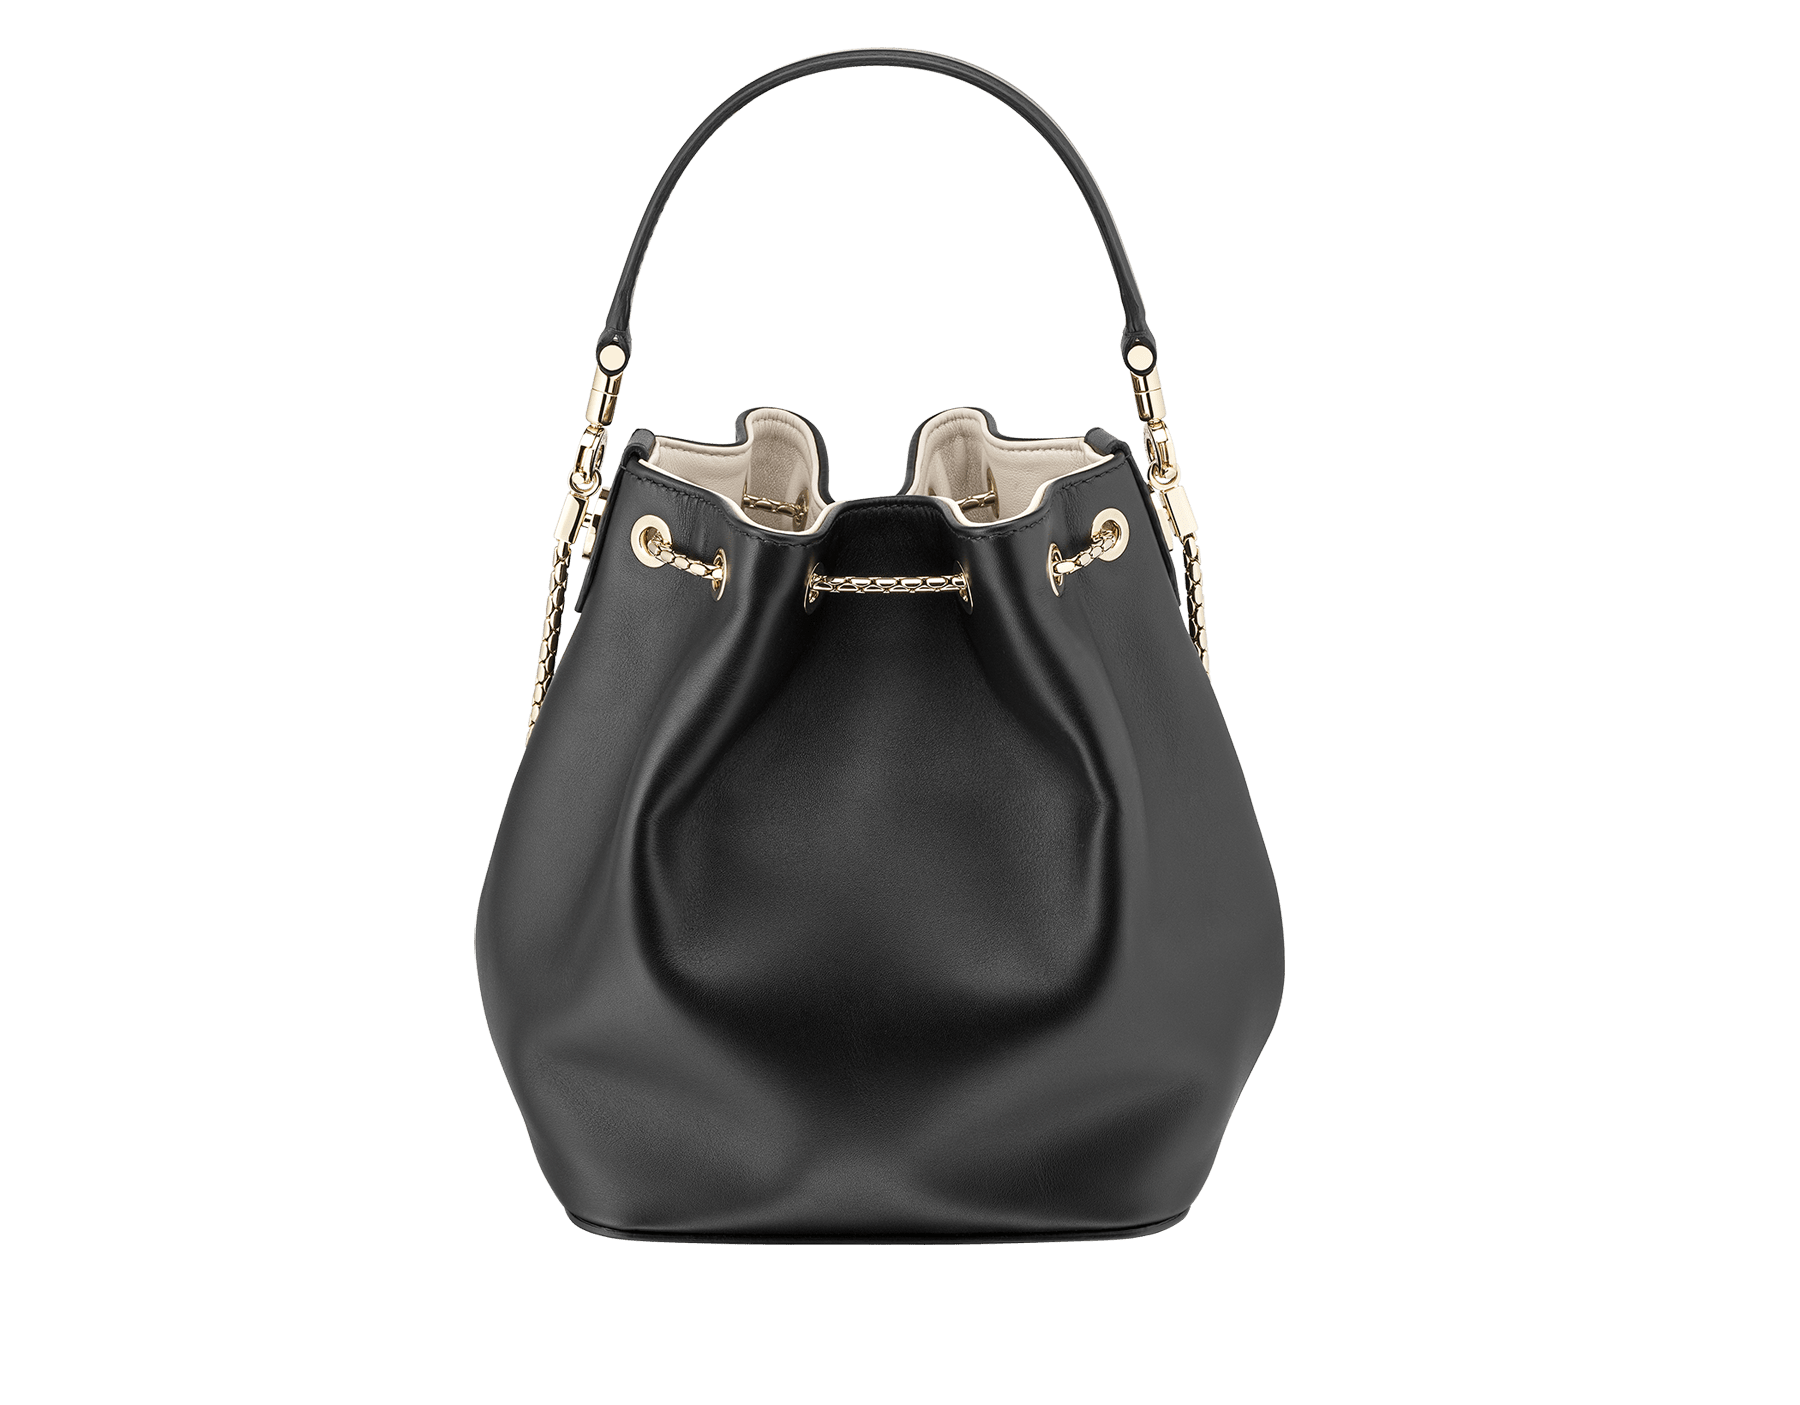 Bucket Serpenti Forever in black smooth calf leather and milky opal nappa internal lining. Hardware in light gold plated brass and snakehead closure in black and white enamel, with eyes in black onyx. 934-CLb image 3